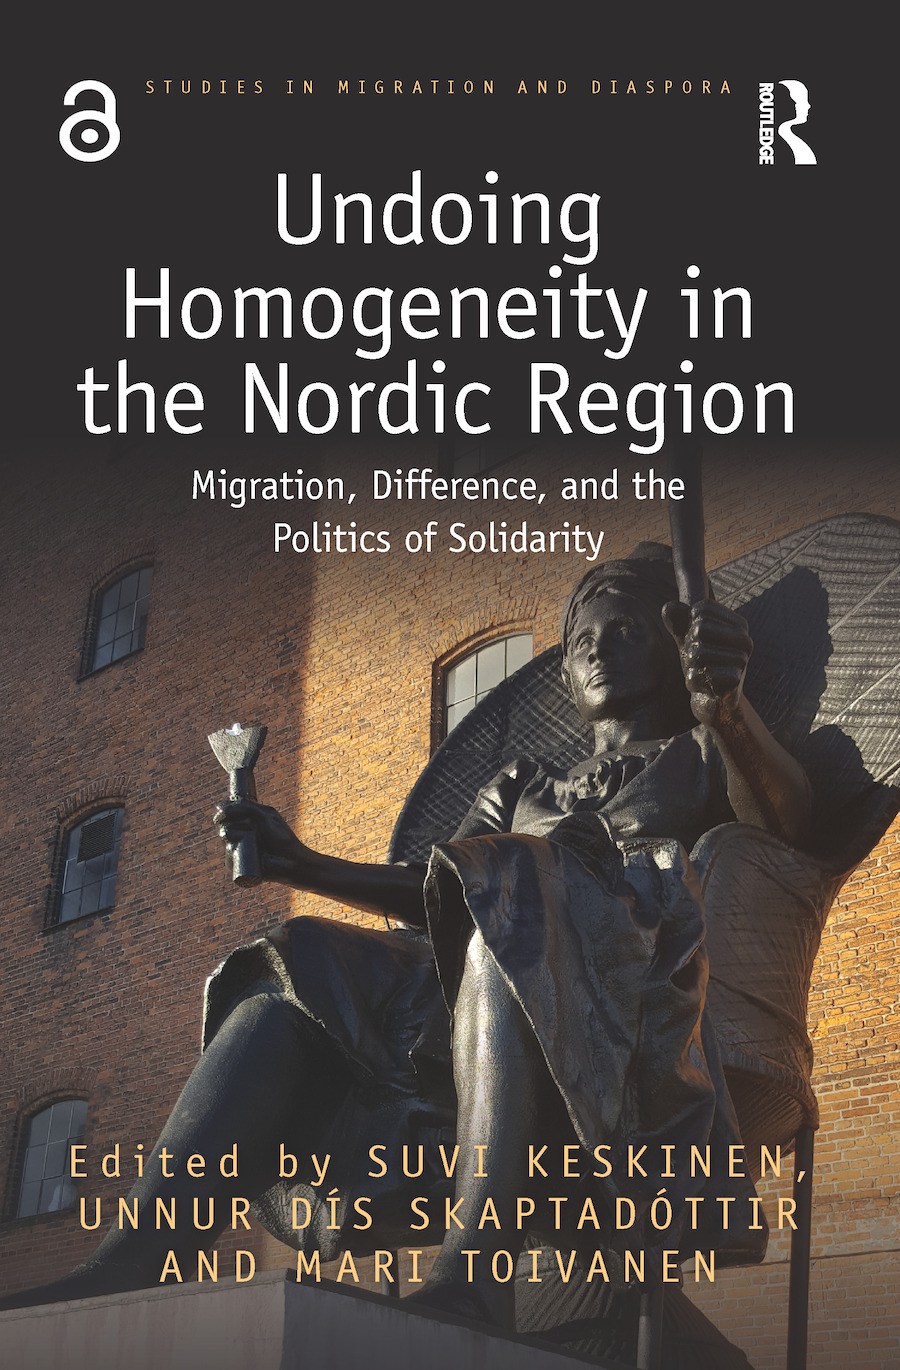 Undoing Homogeneity in the Nordic Region: Migration, Difference and the Politics of Solidarity book cover